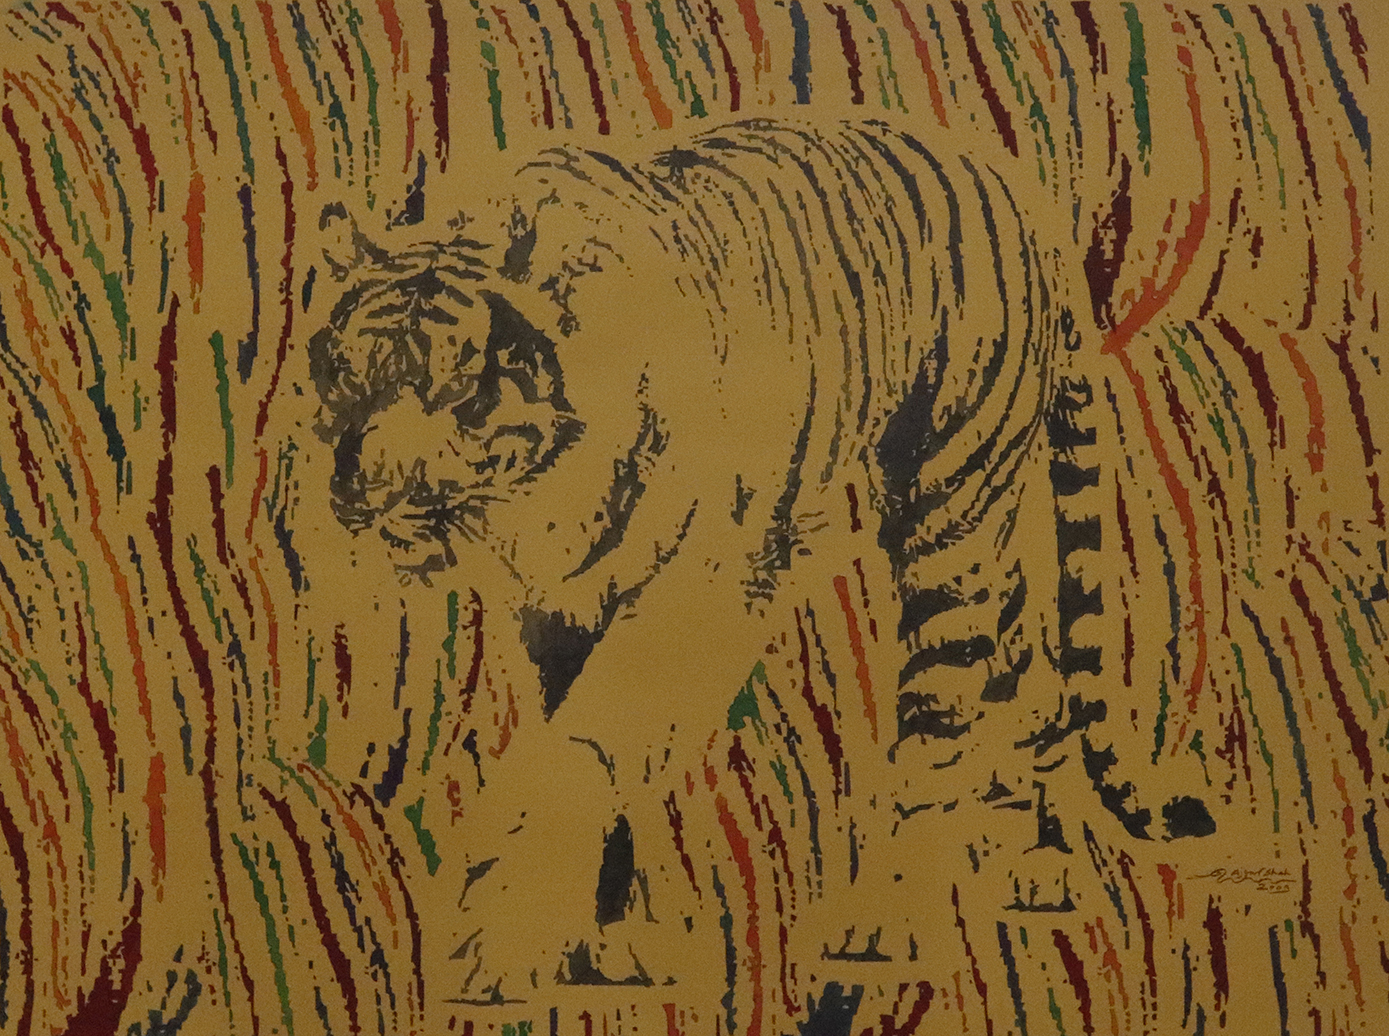 Vanishing Tiger 16437